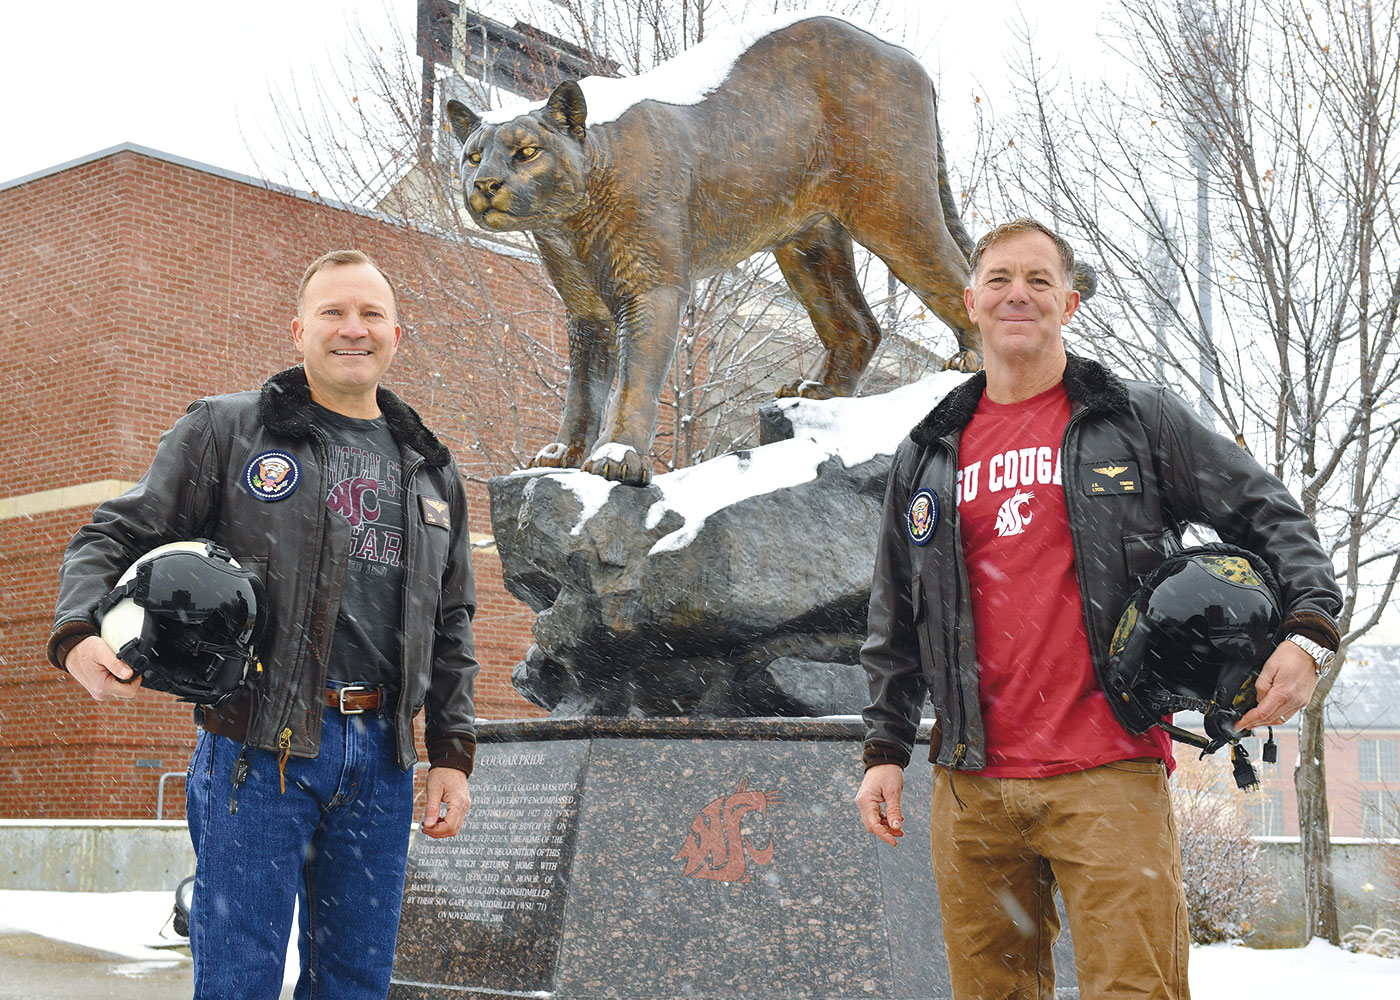 Dan Ircink and Jeff Tontini in front of WSU's Martin Stadium and cougar statue